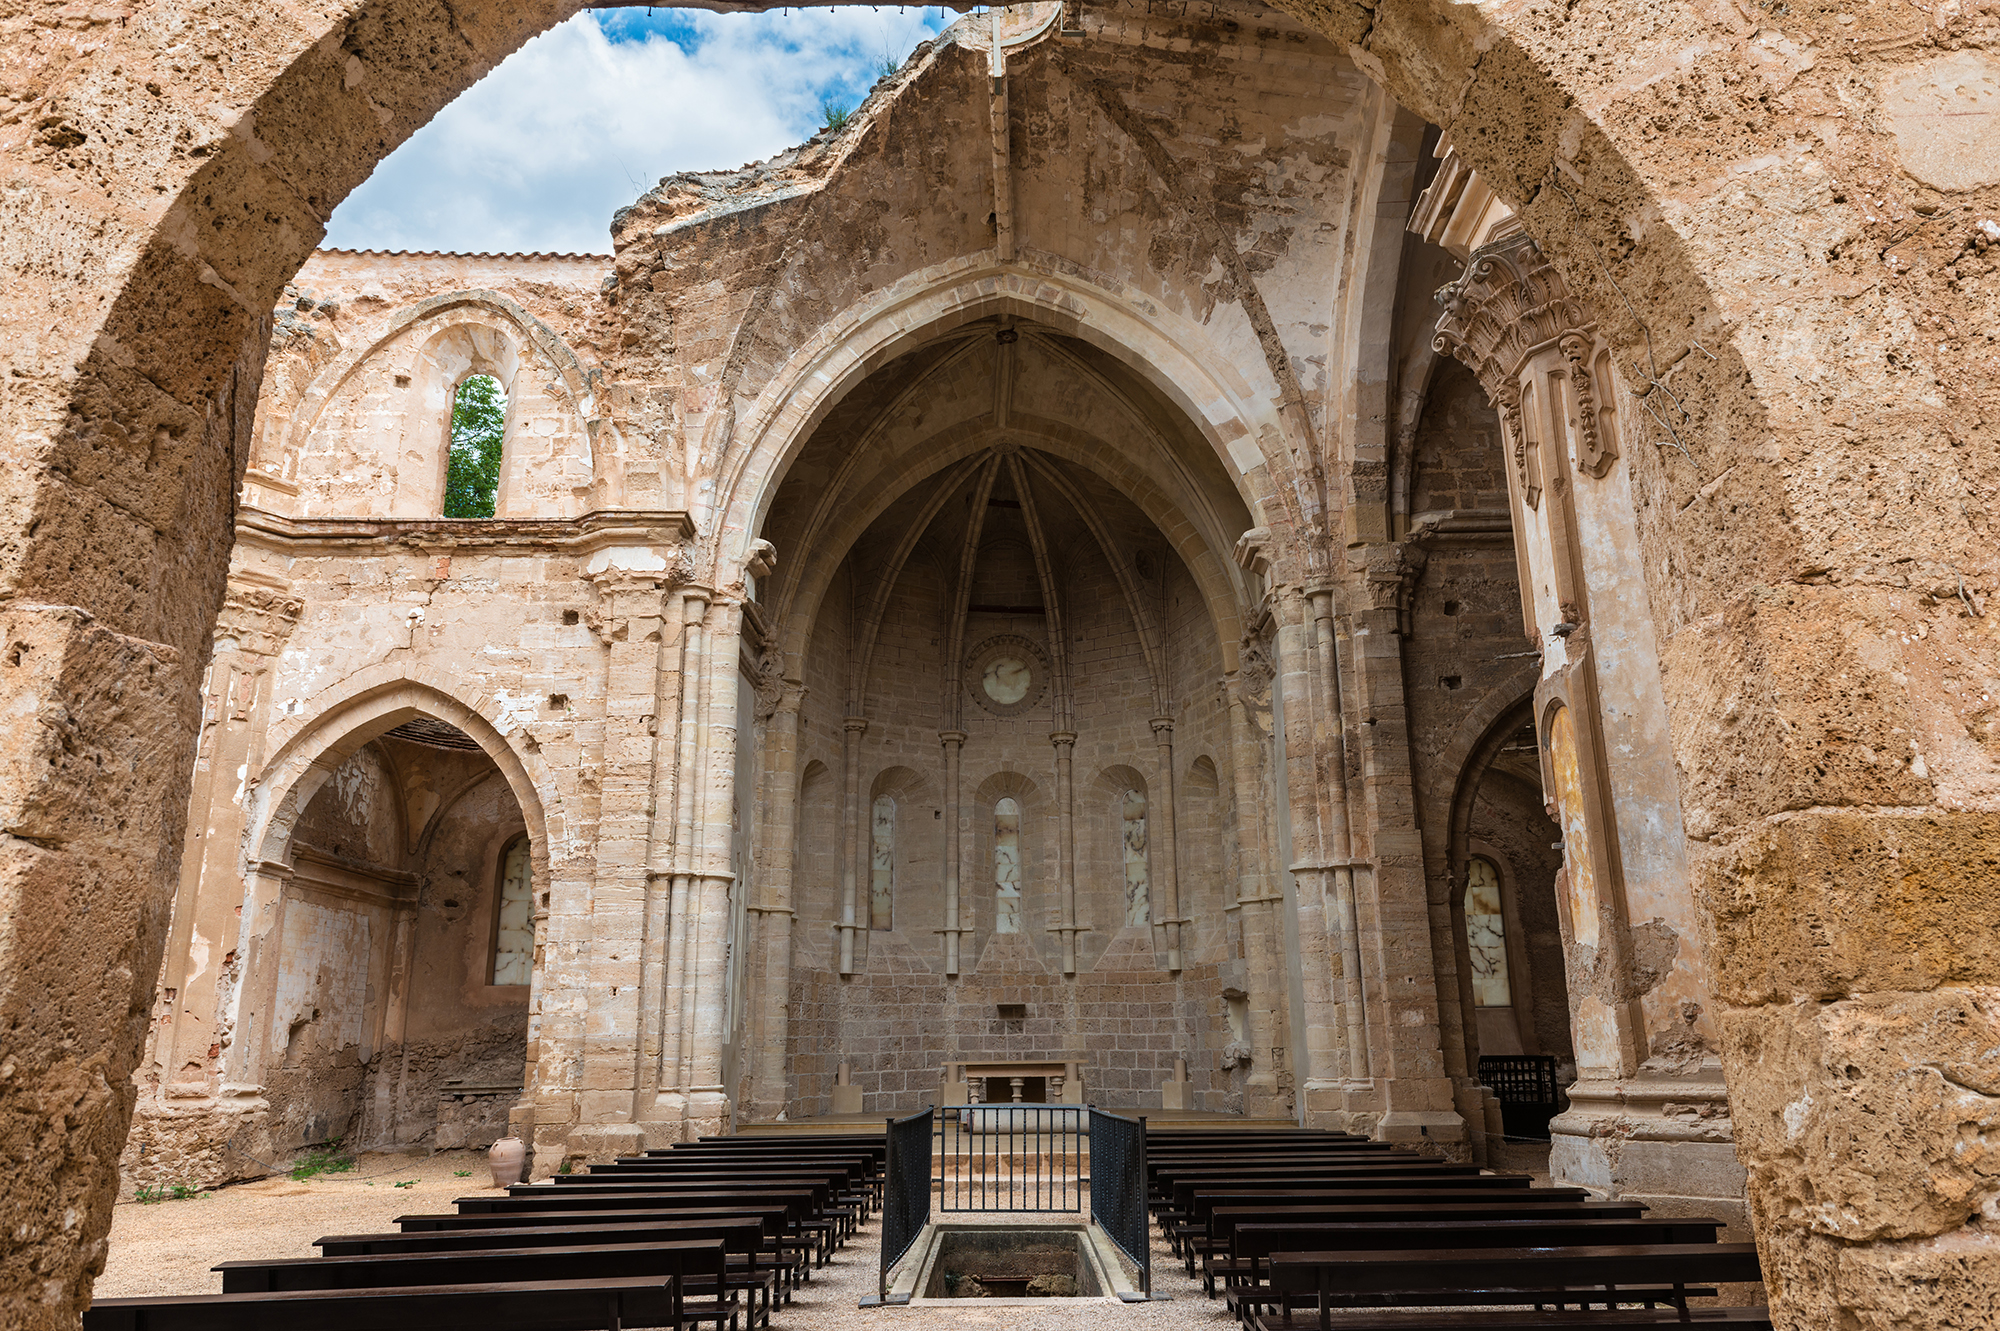 Ruins of the church of the Monastery of Piedra